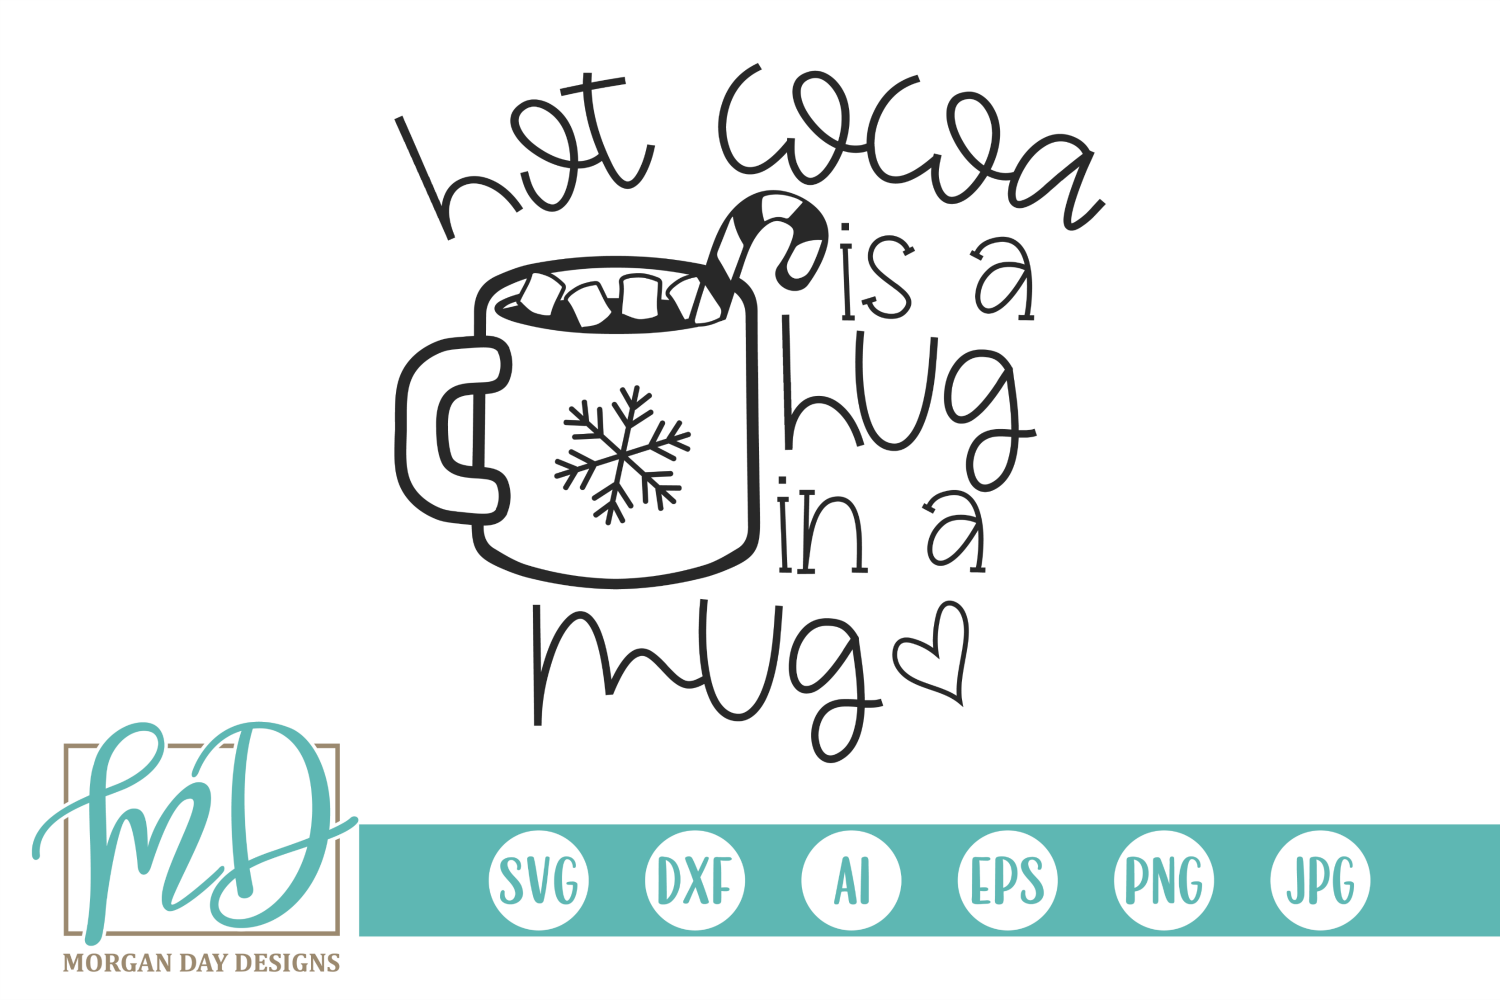 Download Free Hot Cocoa Is A Hug In A Mug Graphic By Morgan Day Designs for Cricut Explore, Silhouette and other cutting machines.